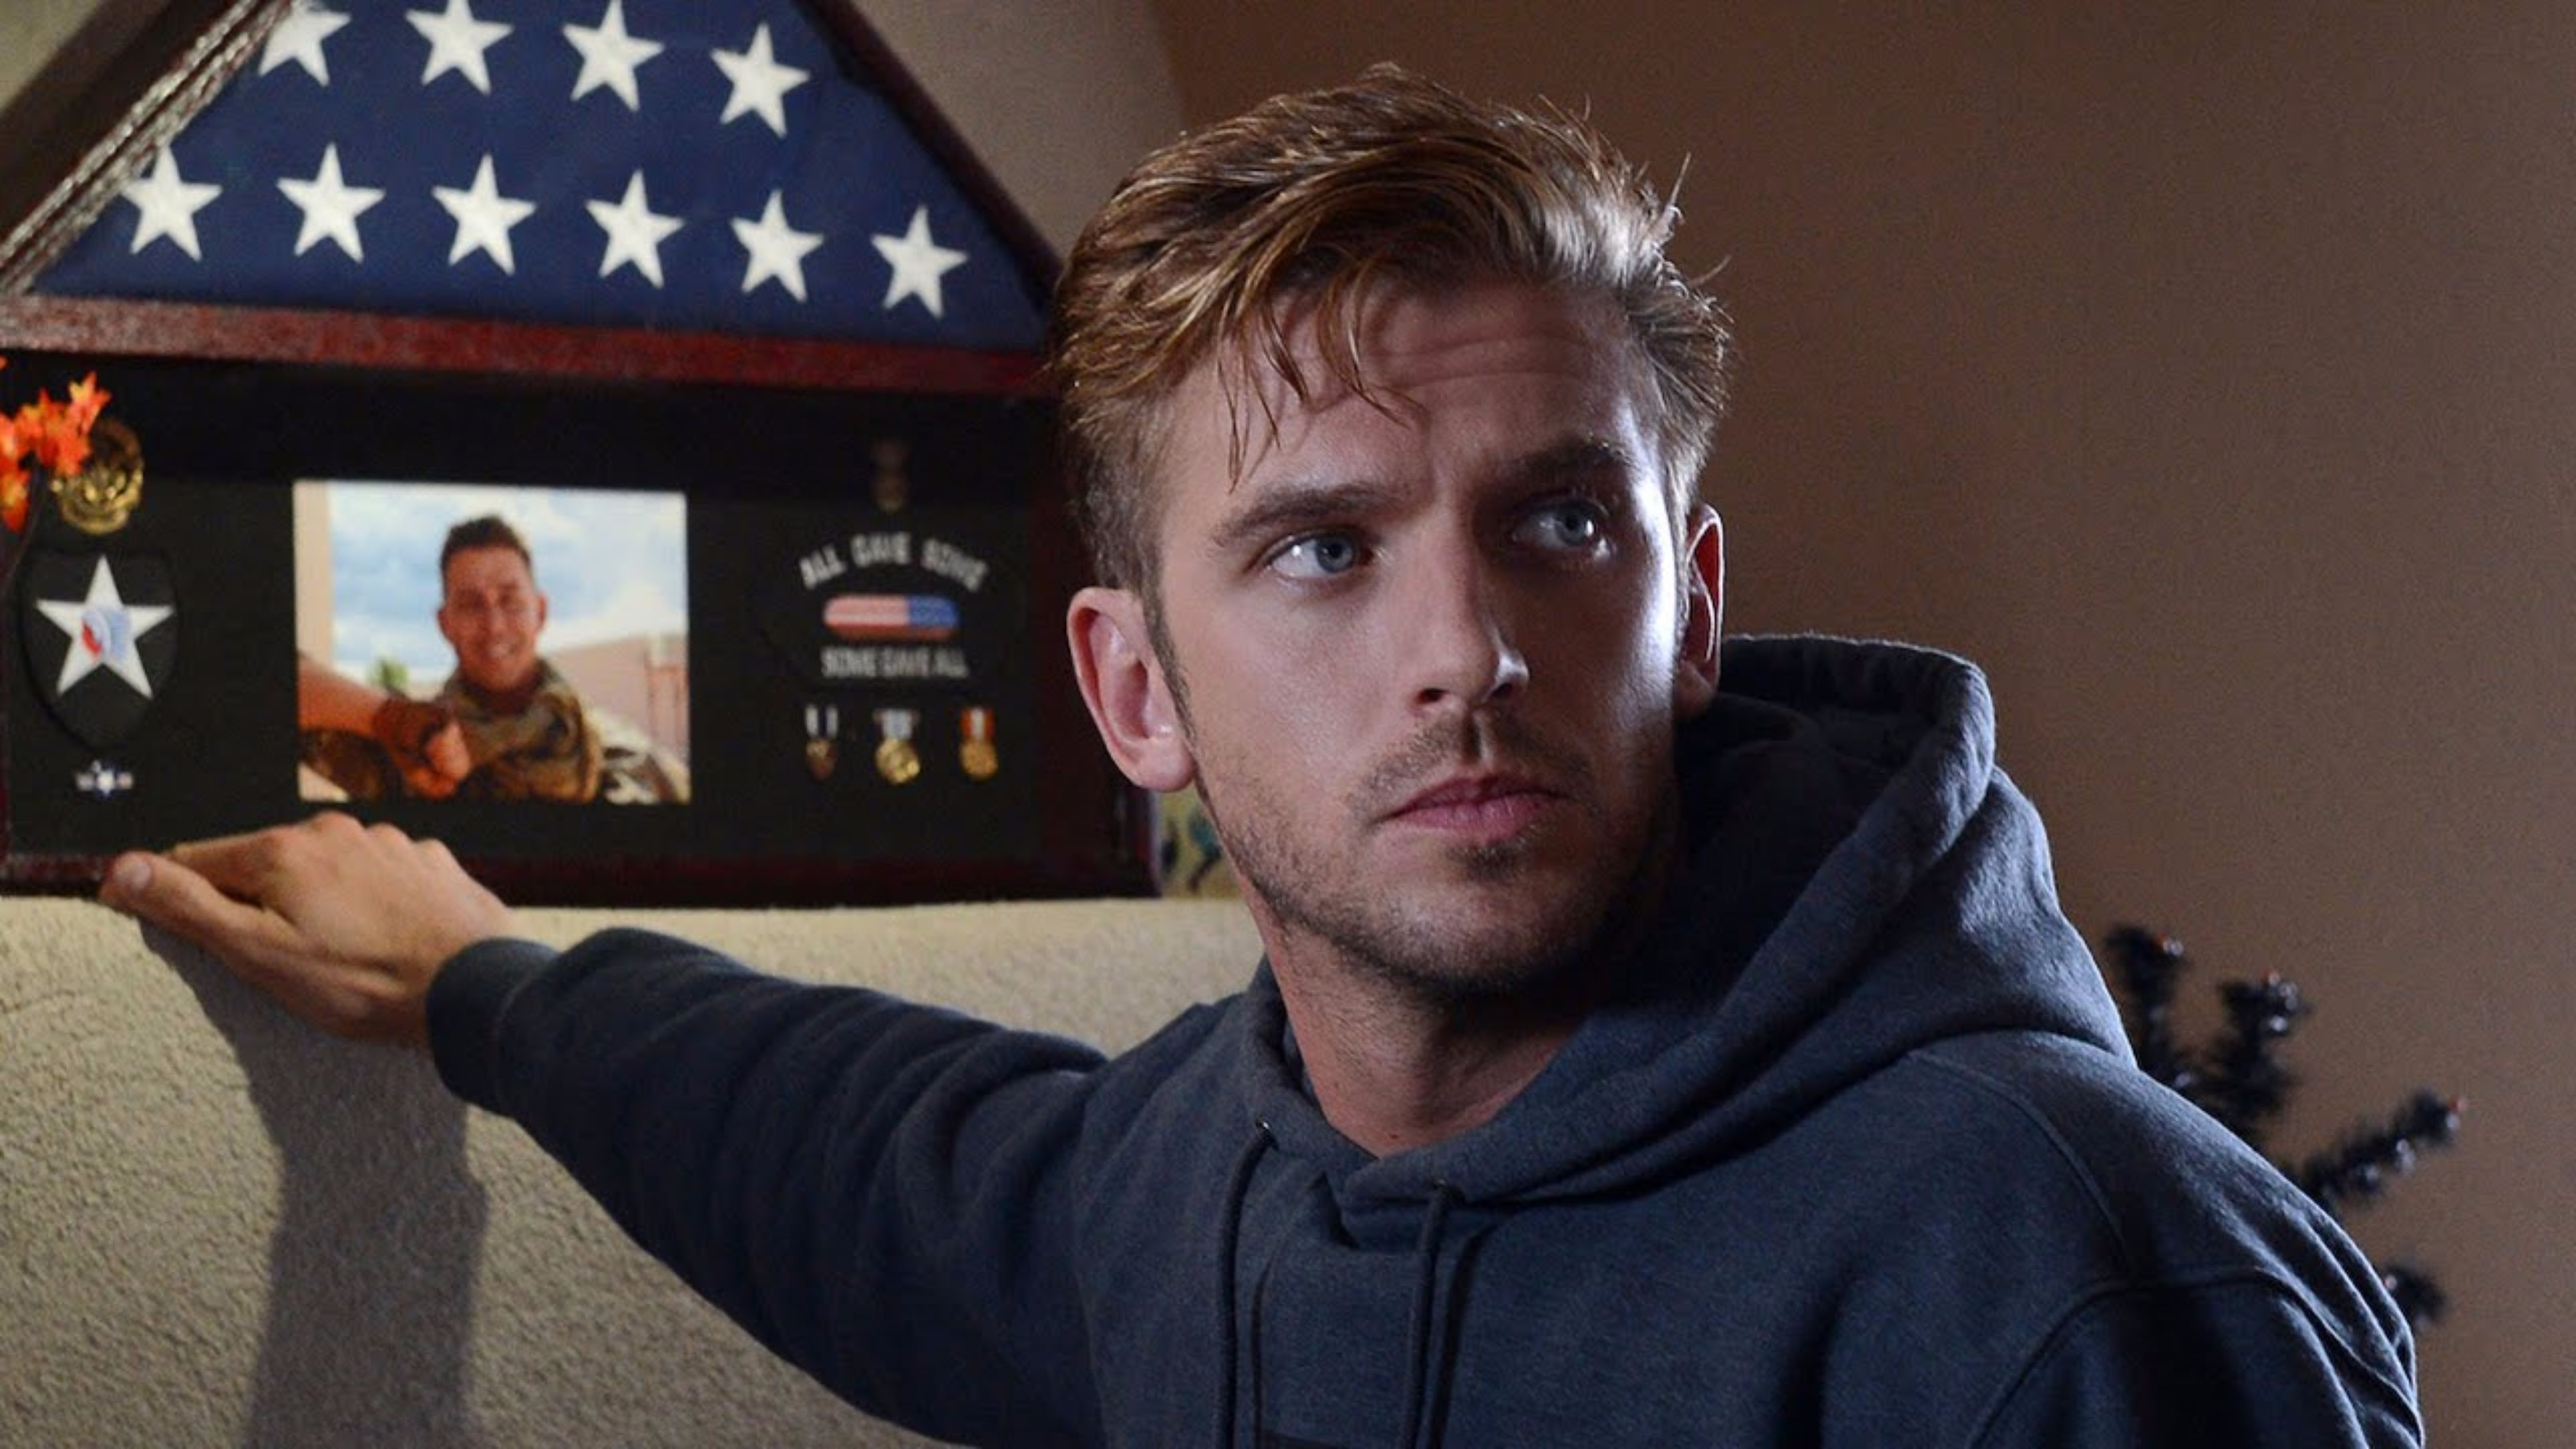 Dan Gosling Wallpaper: Dan Stevens HD Wallpapers